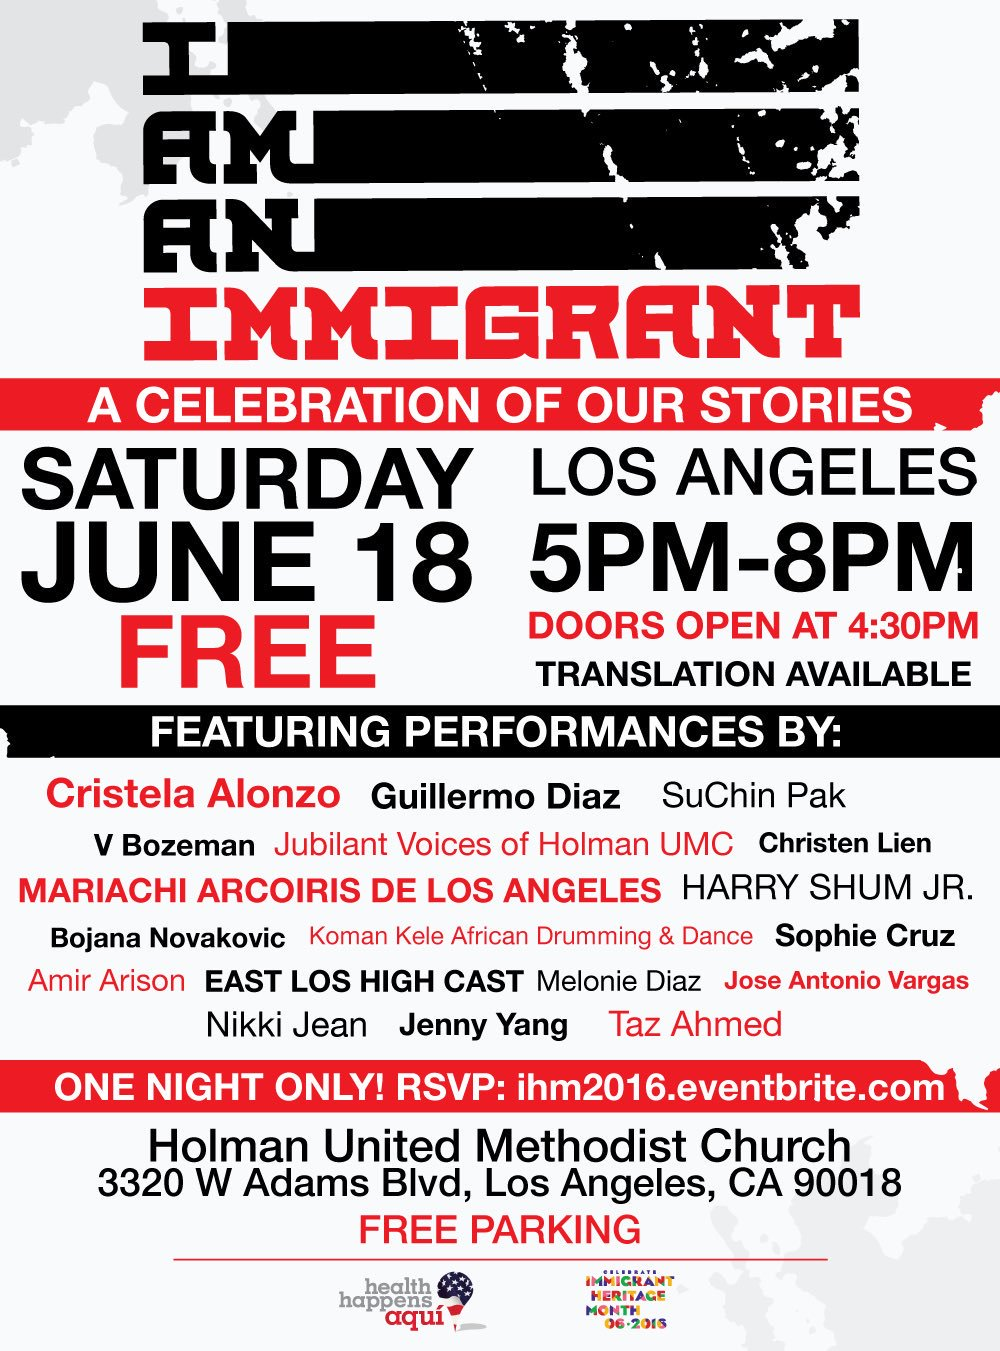 RT @Welcome_us: Tonight's the night, #LA...come to our #IAmAnImmigrant event!!! (Pssst: It's free ;) #IHM2016 https://t.co/wofbhp4oAR